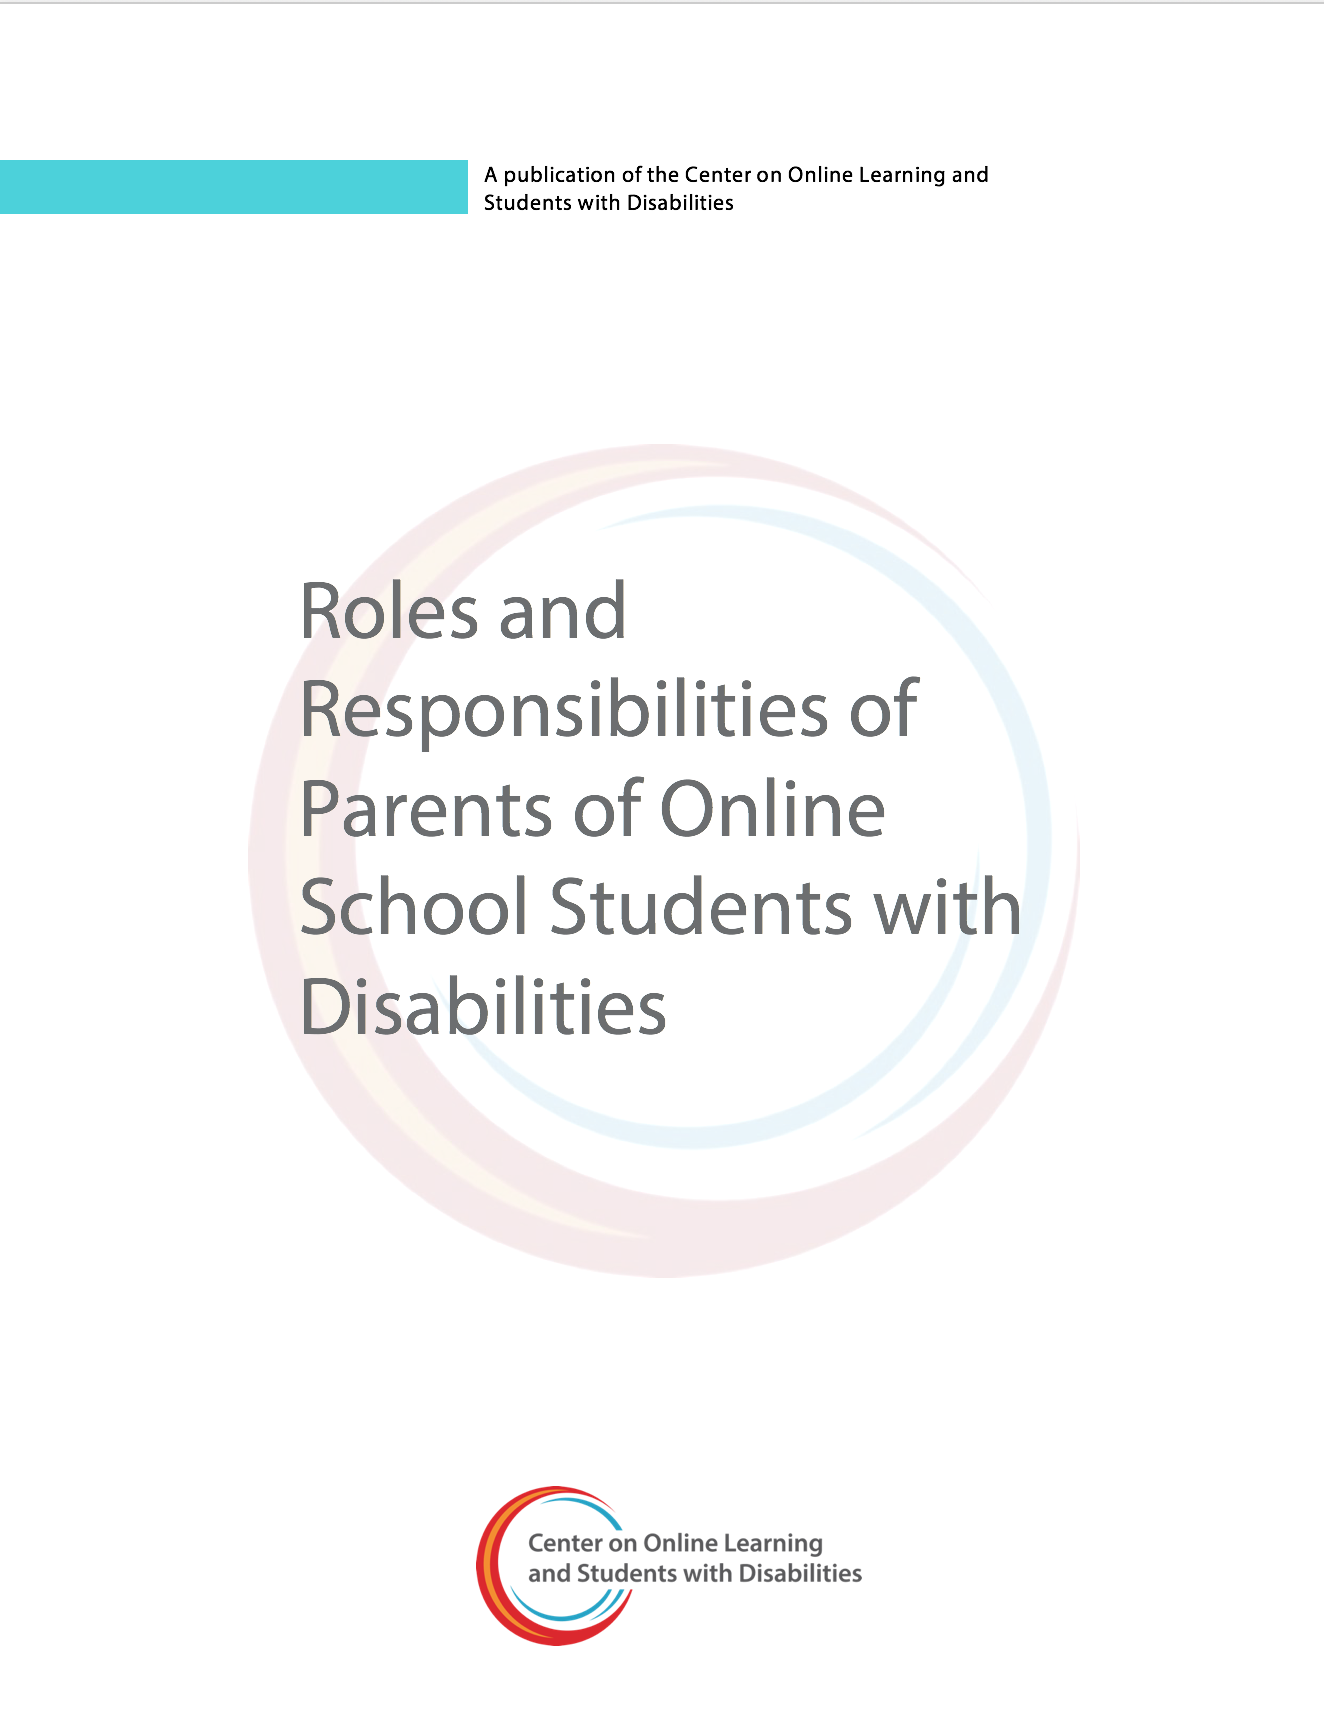 Roles And Responsibilities Of Parents Of Online School Students With Disabilities